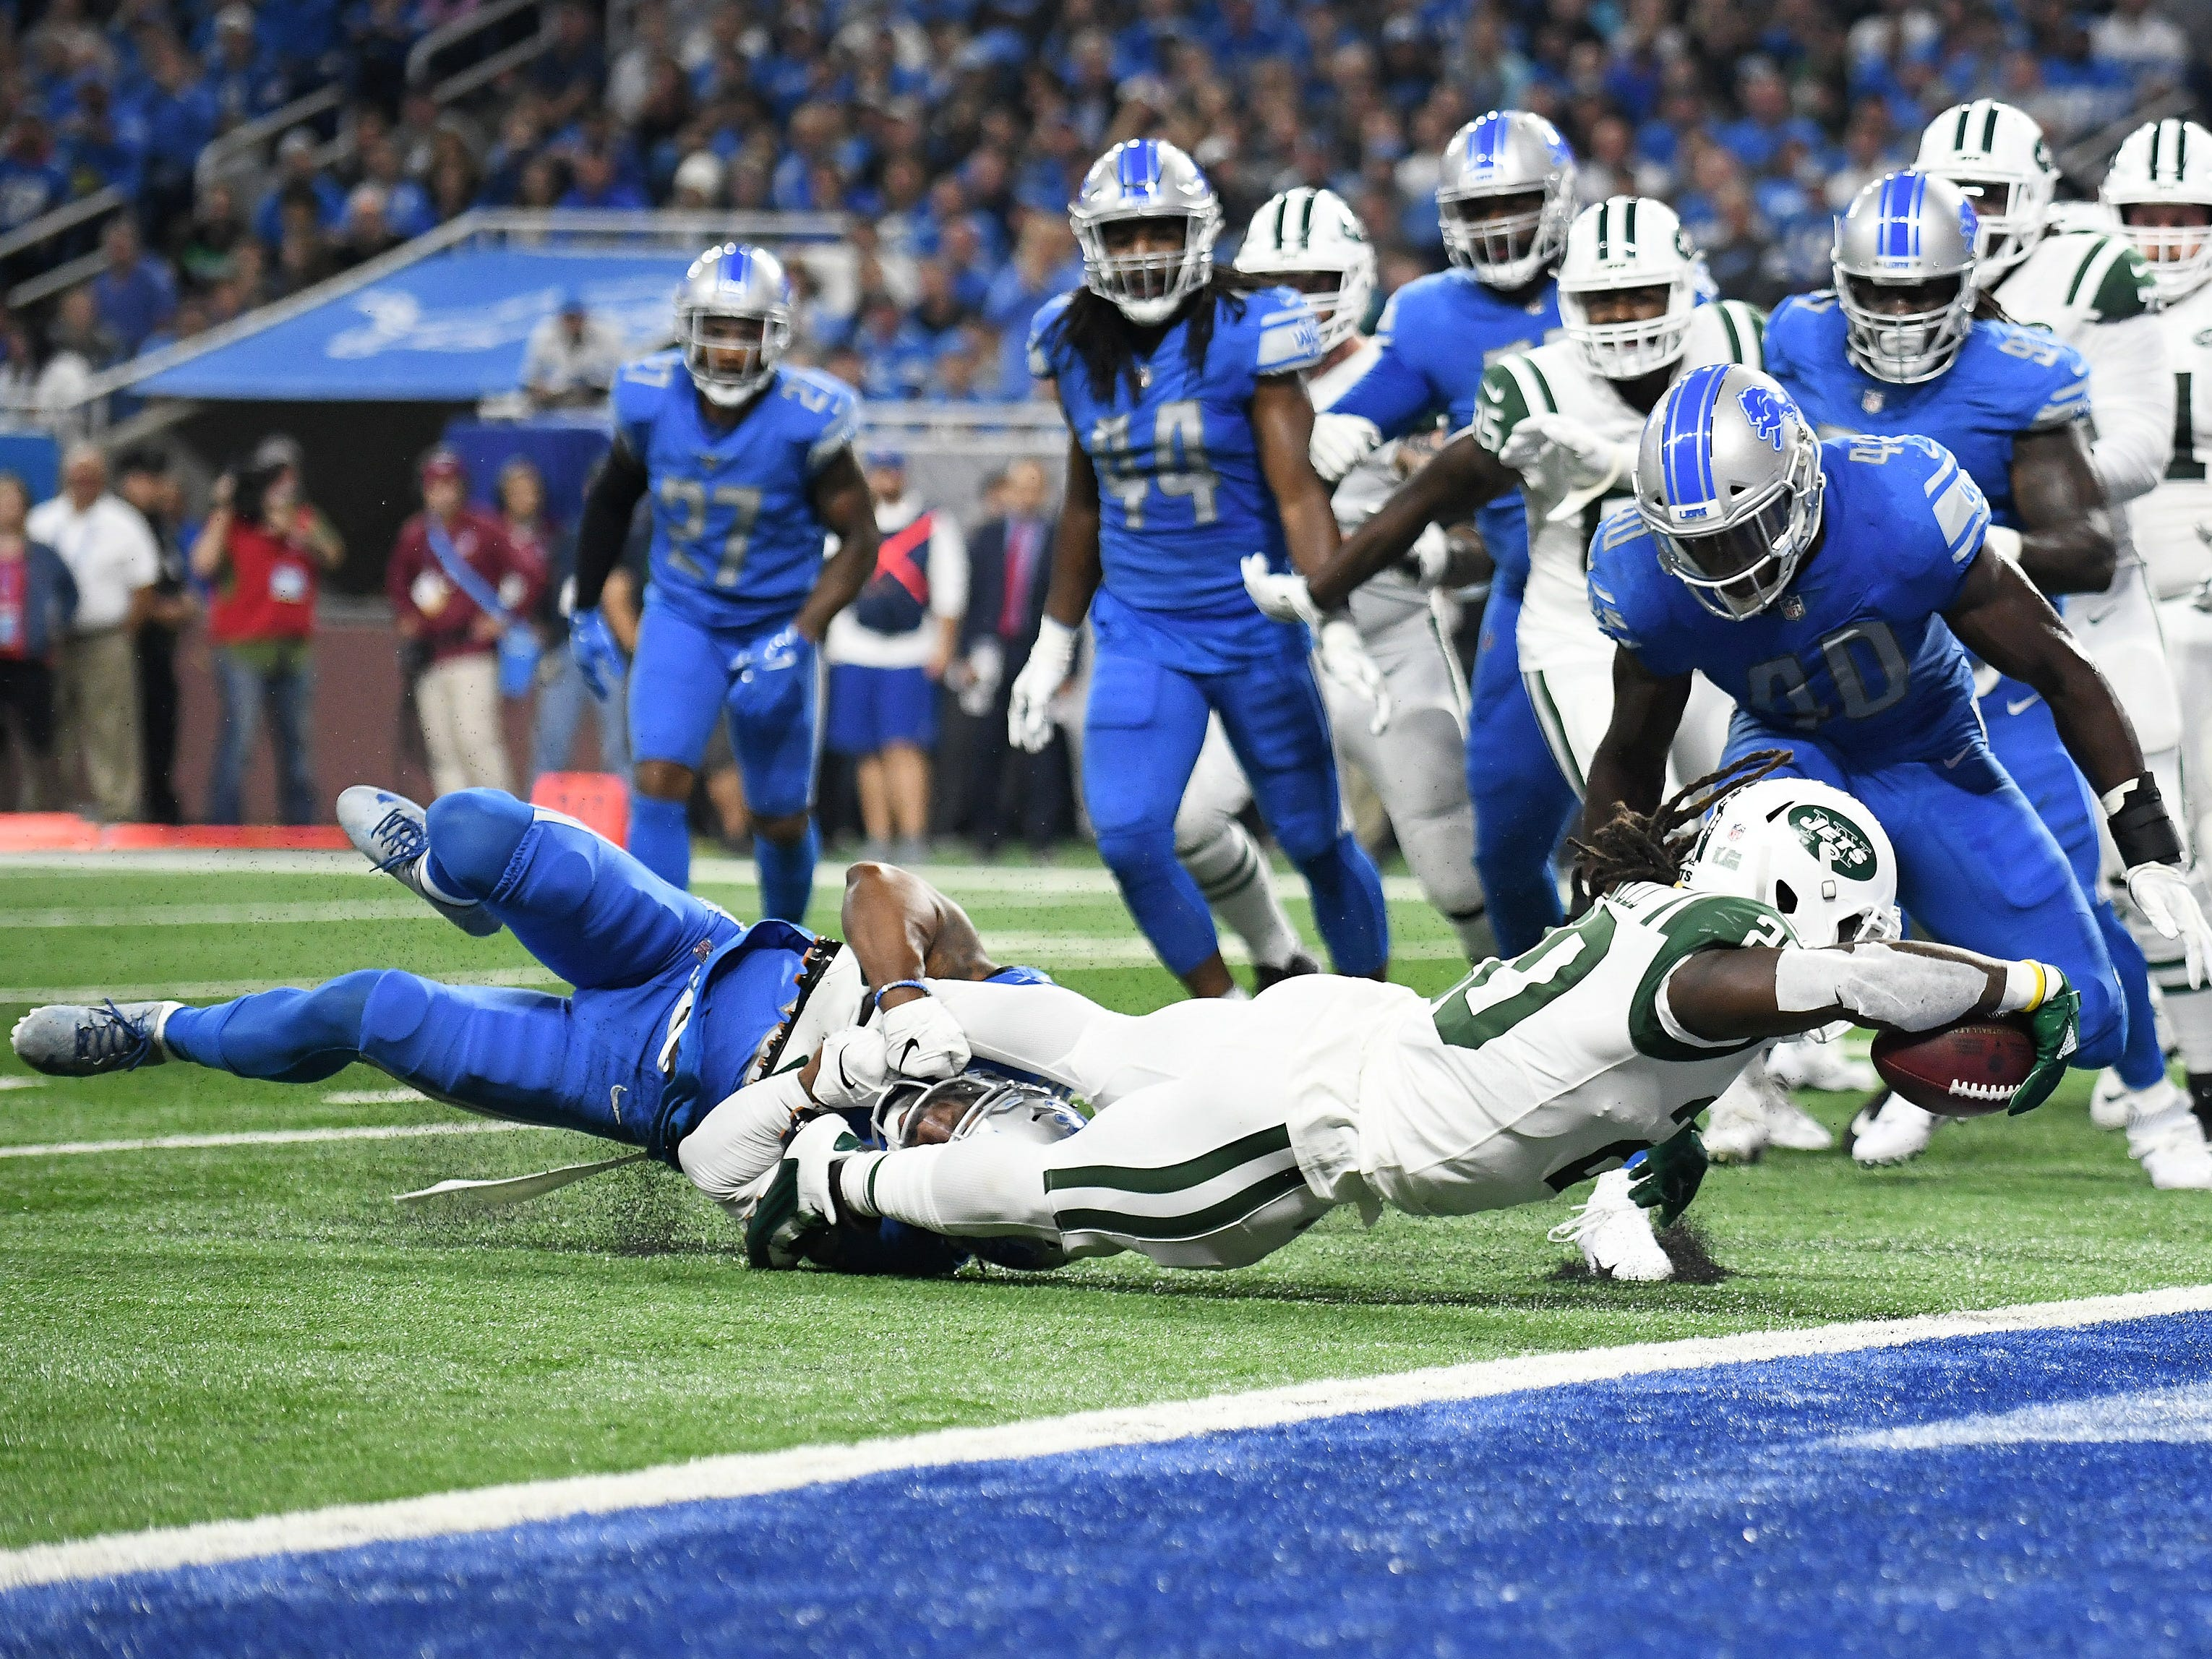 Lions' Quandre Diggs tries to tackle Jets running back Isaiah Crowell but Crowell scores a touchdown in the first half.